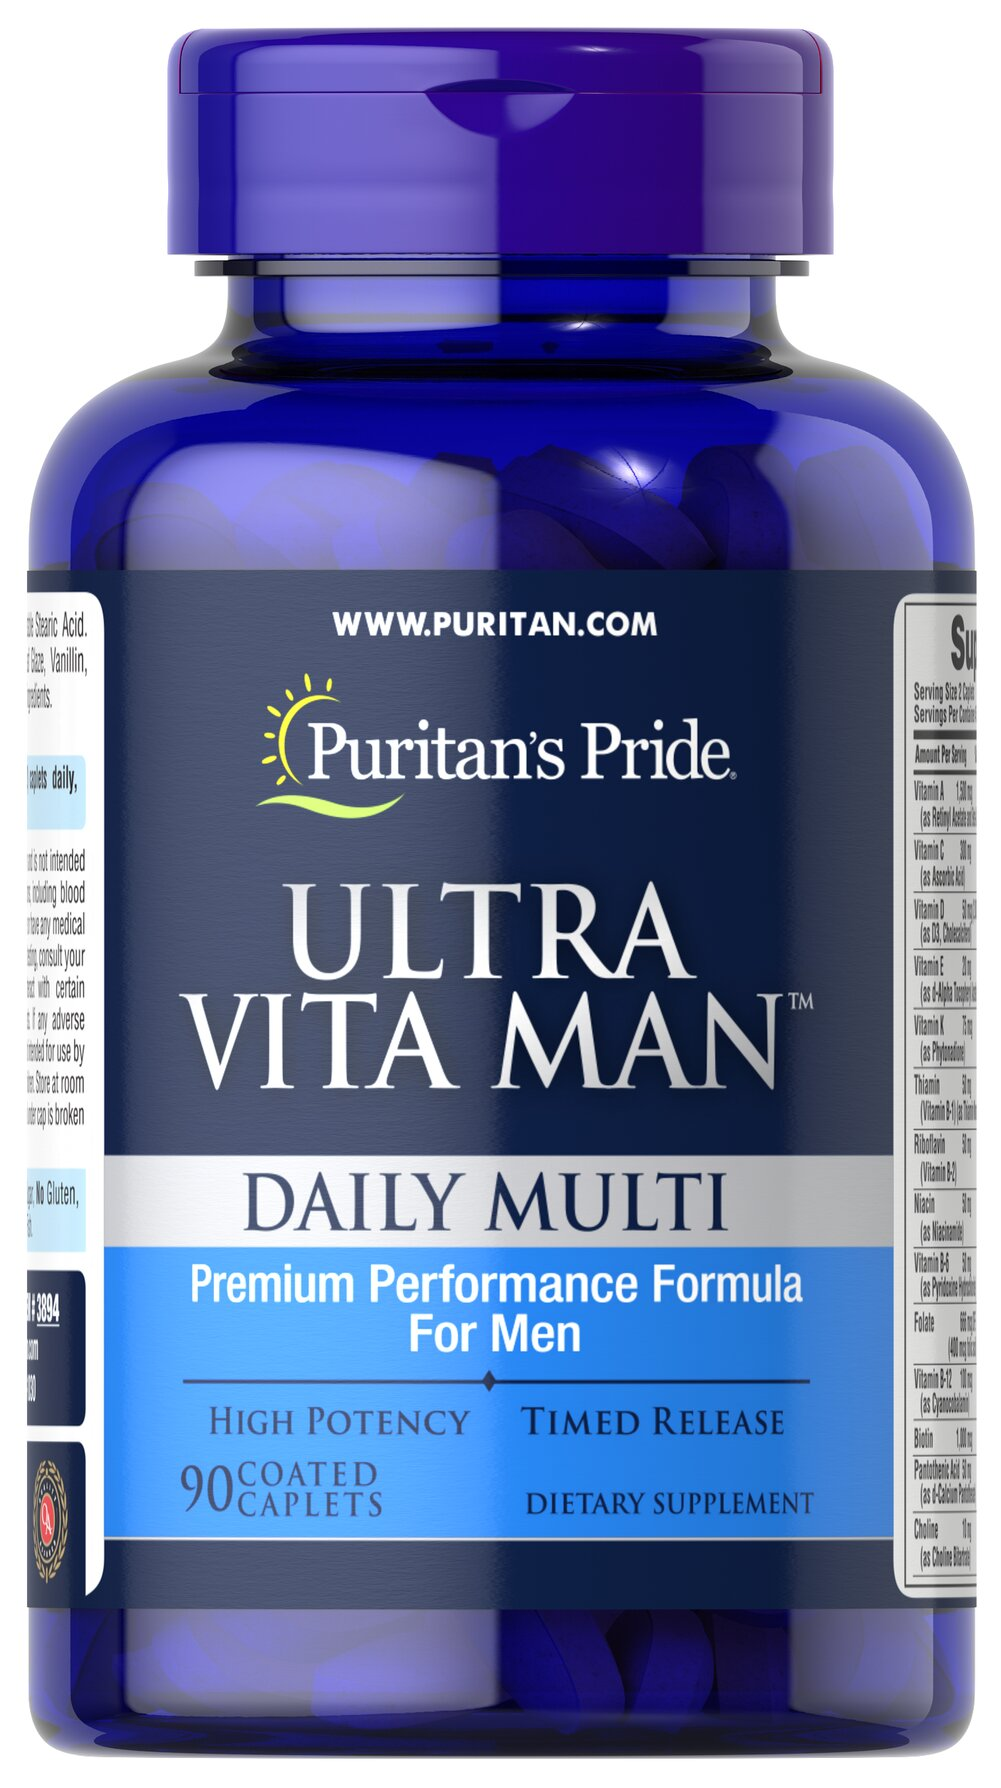 Ultra Vita Man™ Time Release <p>This time release multivitamin  delivers vitamins and minerals shown to be beneficial to men's overall wellness. From antioxidant and immune support to cardiovascular health, Ultra Vita Man is ideal for today's on-the-go men!**</p> 90 Caplets  $17.39